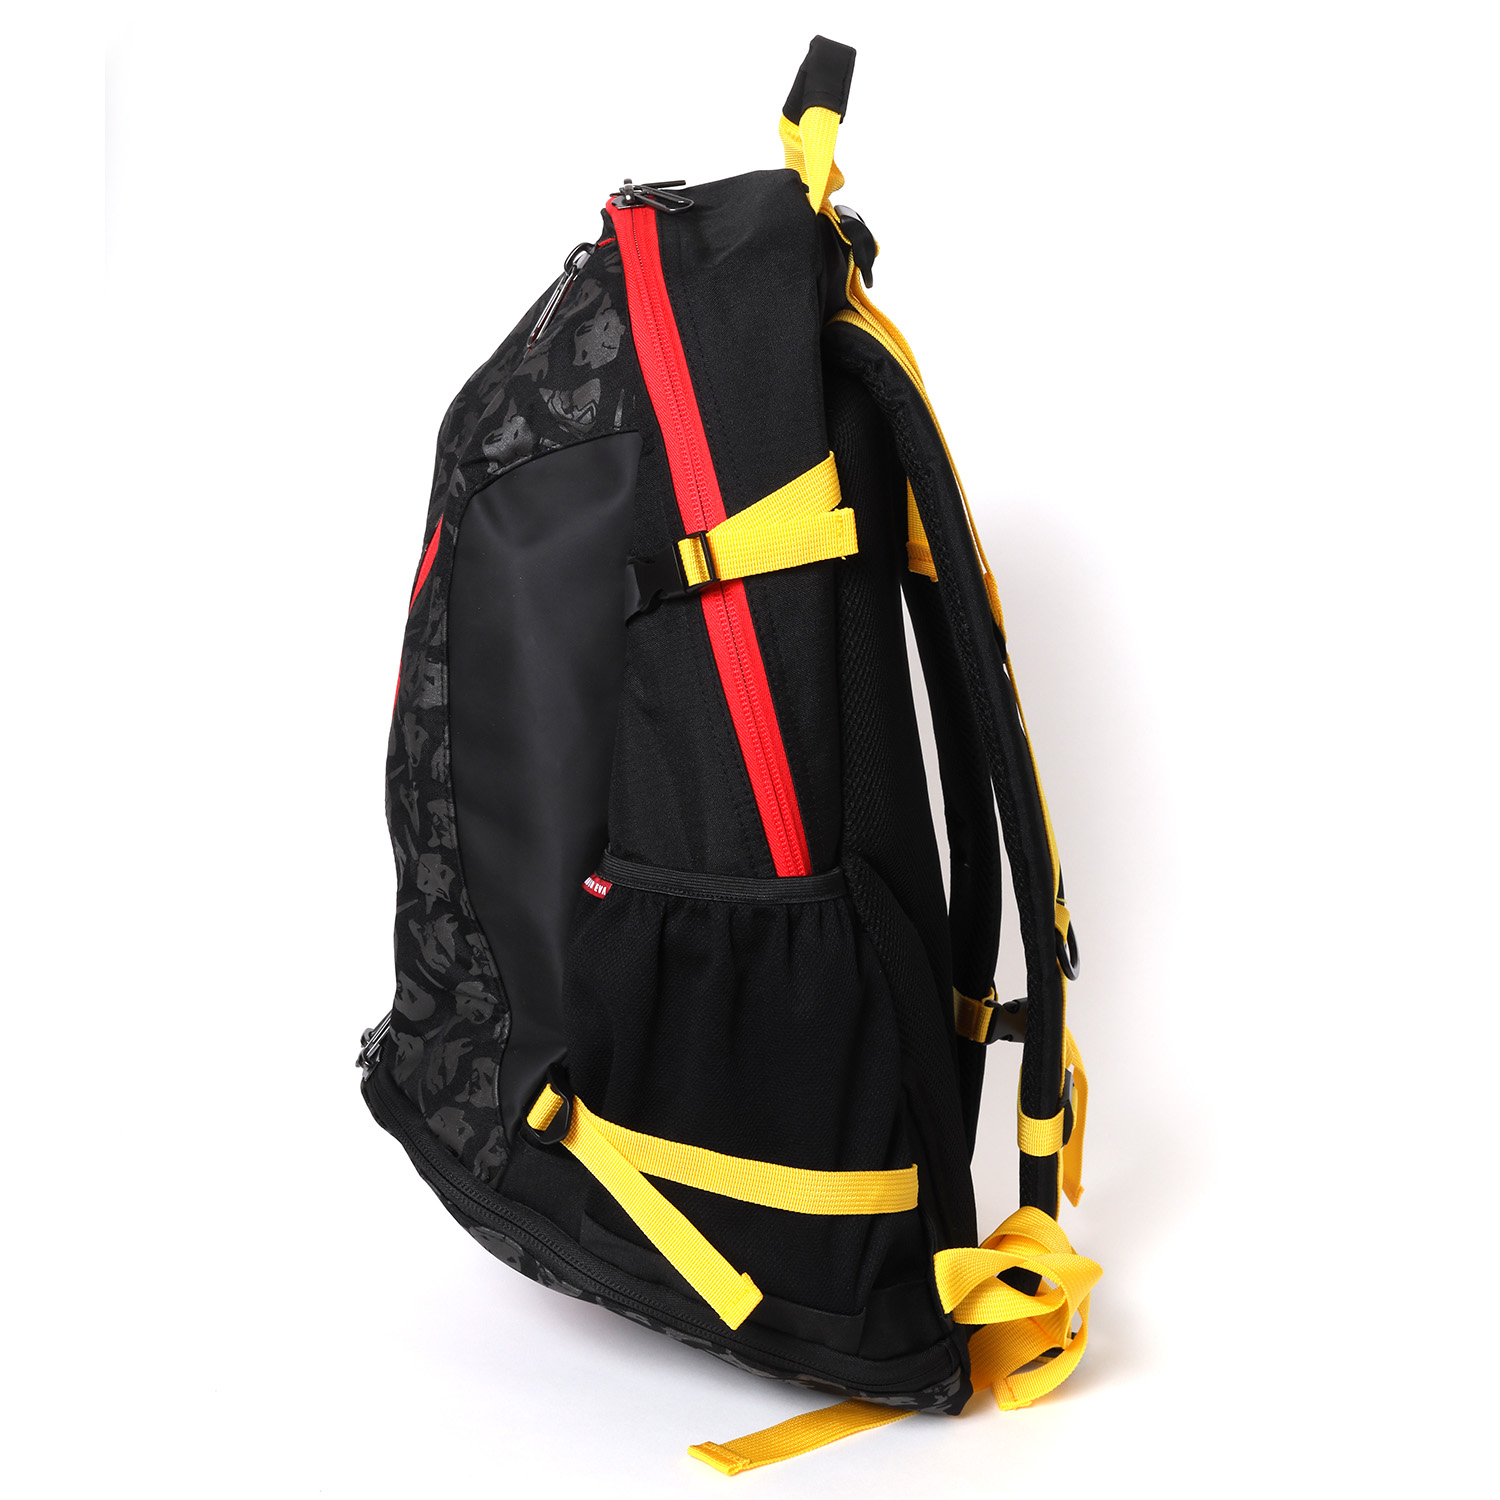 EVA-01 Cager Backpack by SPALDING (Black x Red)